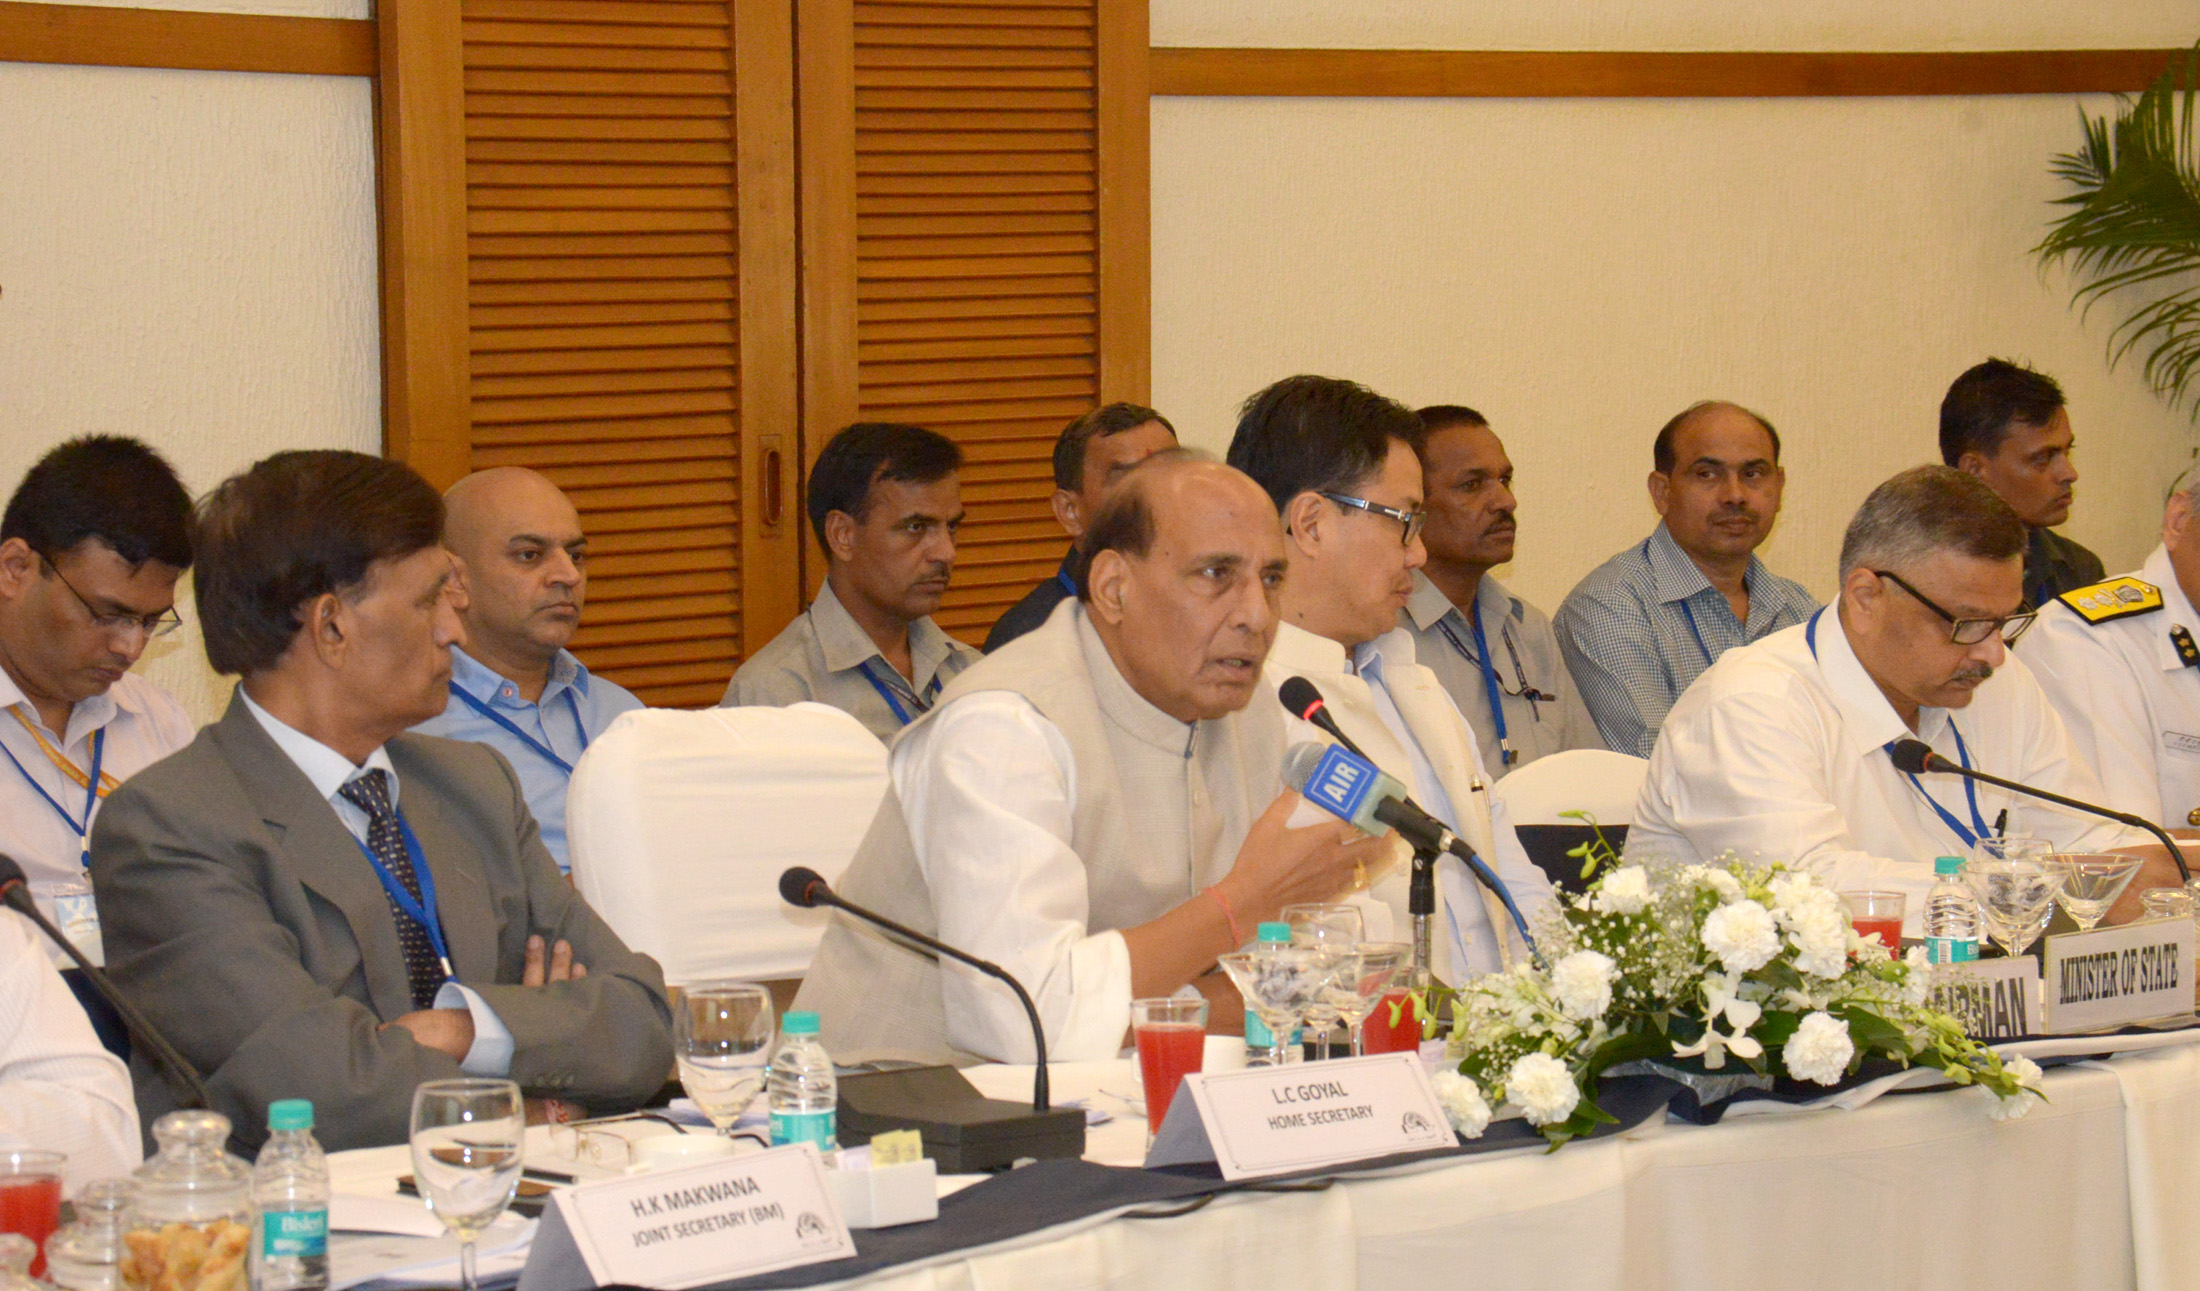 The Union Home Minister, Shri Rajnath Singh addressing the Consultative Committee Meeting of the Ministry of Home Affairs on coastal security, in Panaji, Goa on July 13, 2015.  The Minister of State for Home Affairs, Shri Kiren Rijiju and the Union Home Secretary, Shri L.C. Goyal are also seen.